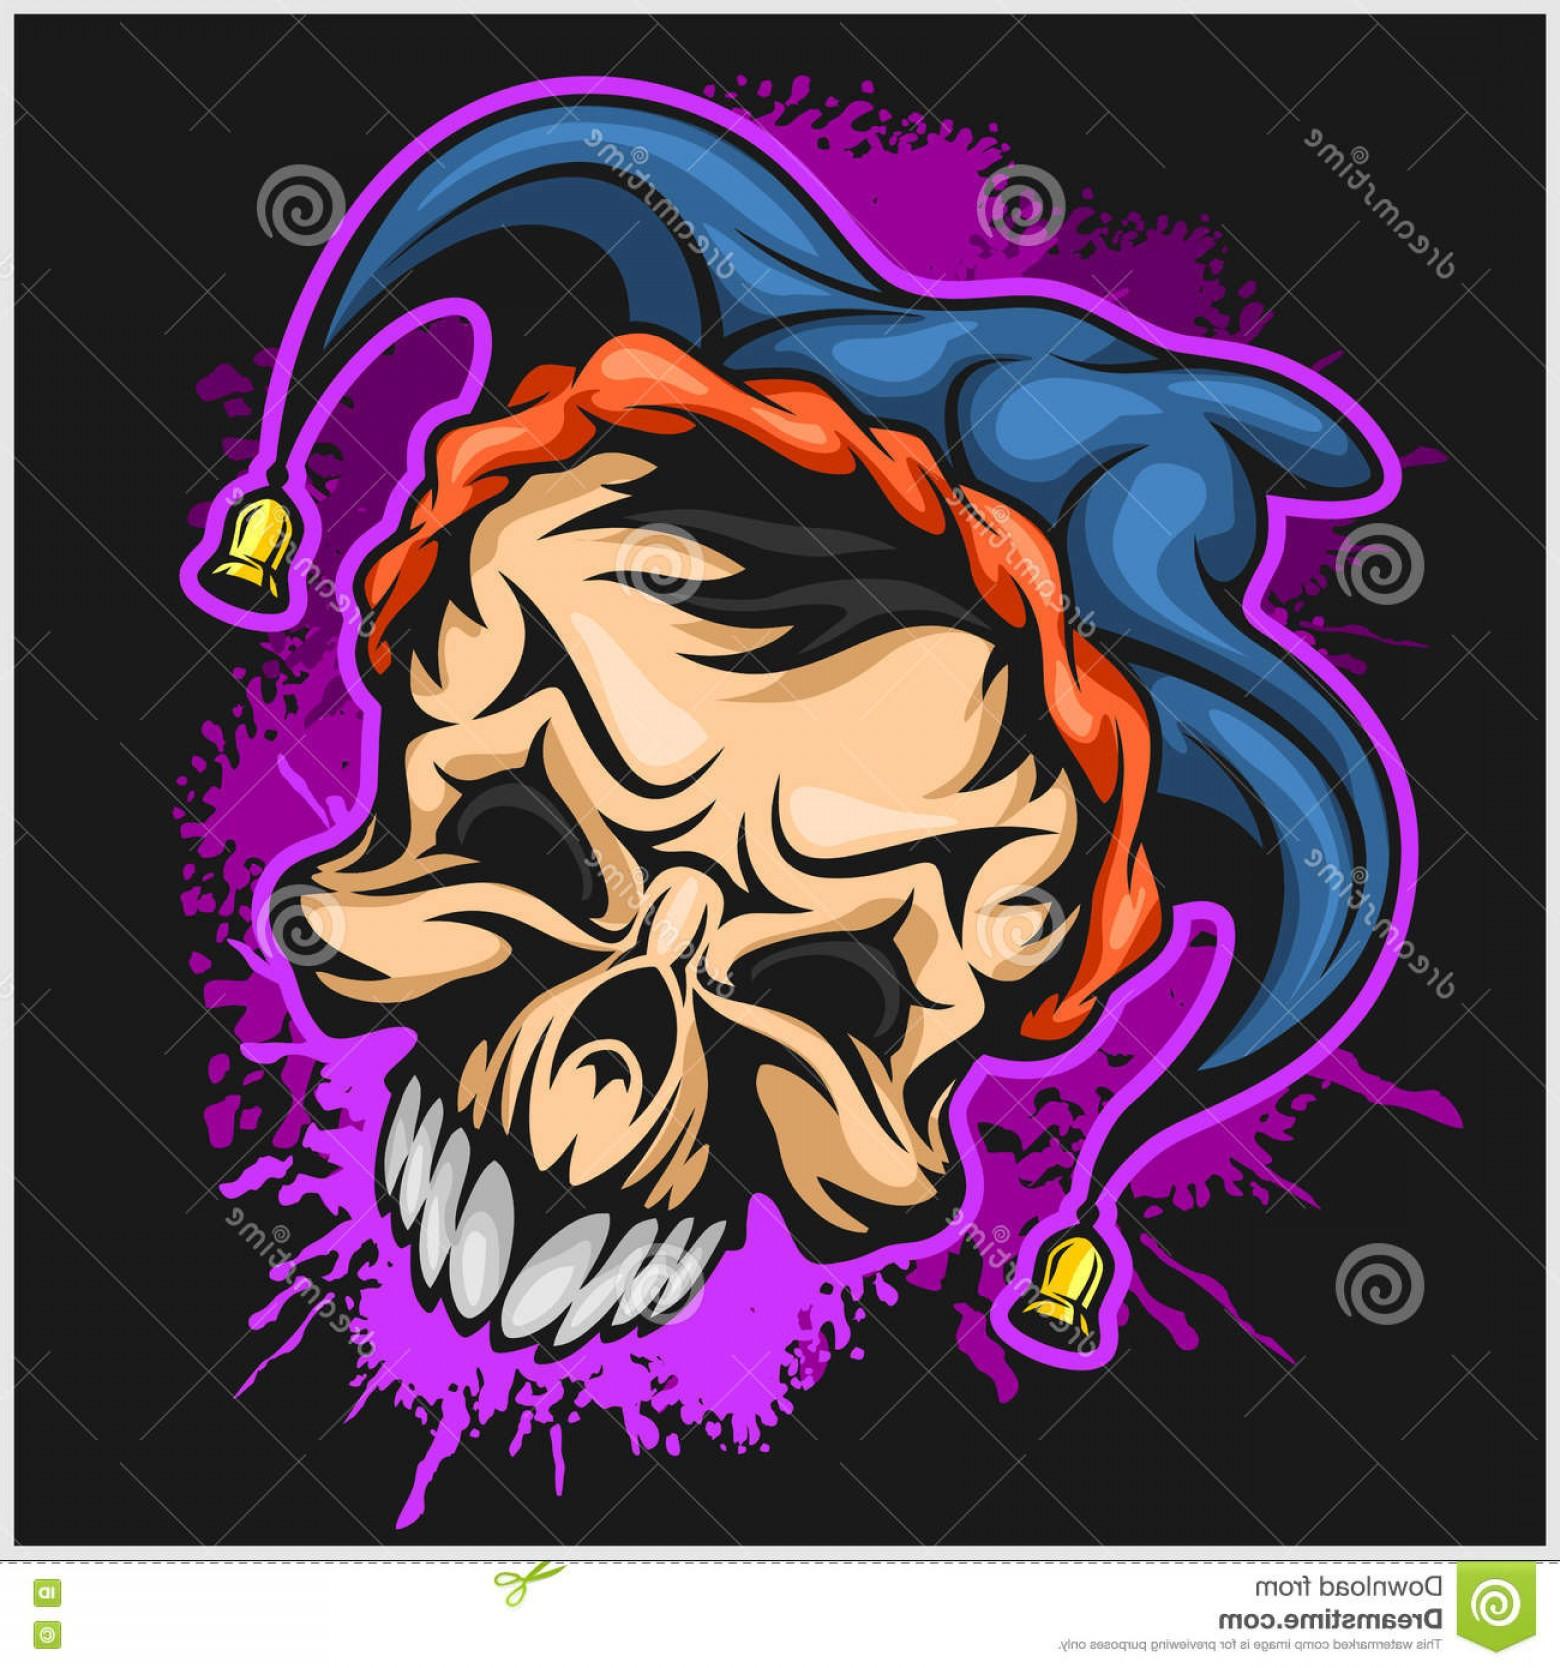 Pennywise Clown Vector: Stock Illustration Evil Scary Clown Halloween Monster Joker Character Vector Illustration Grunge Background Image